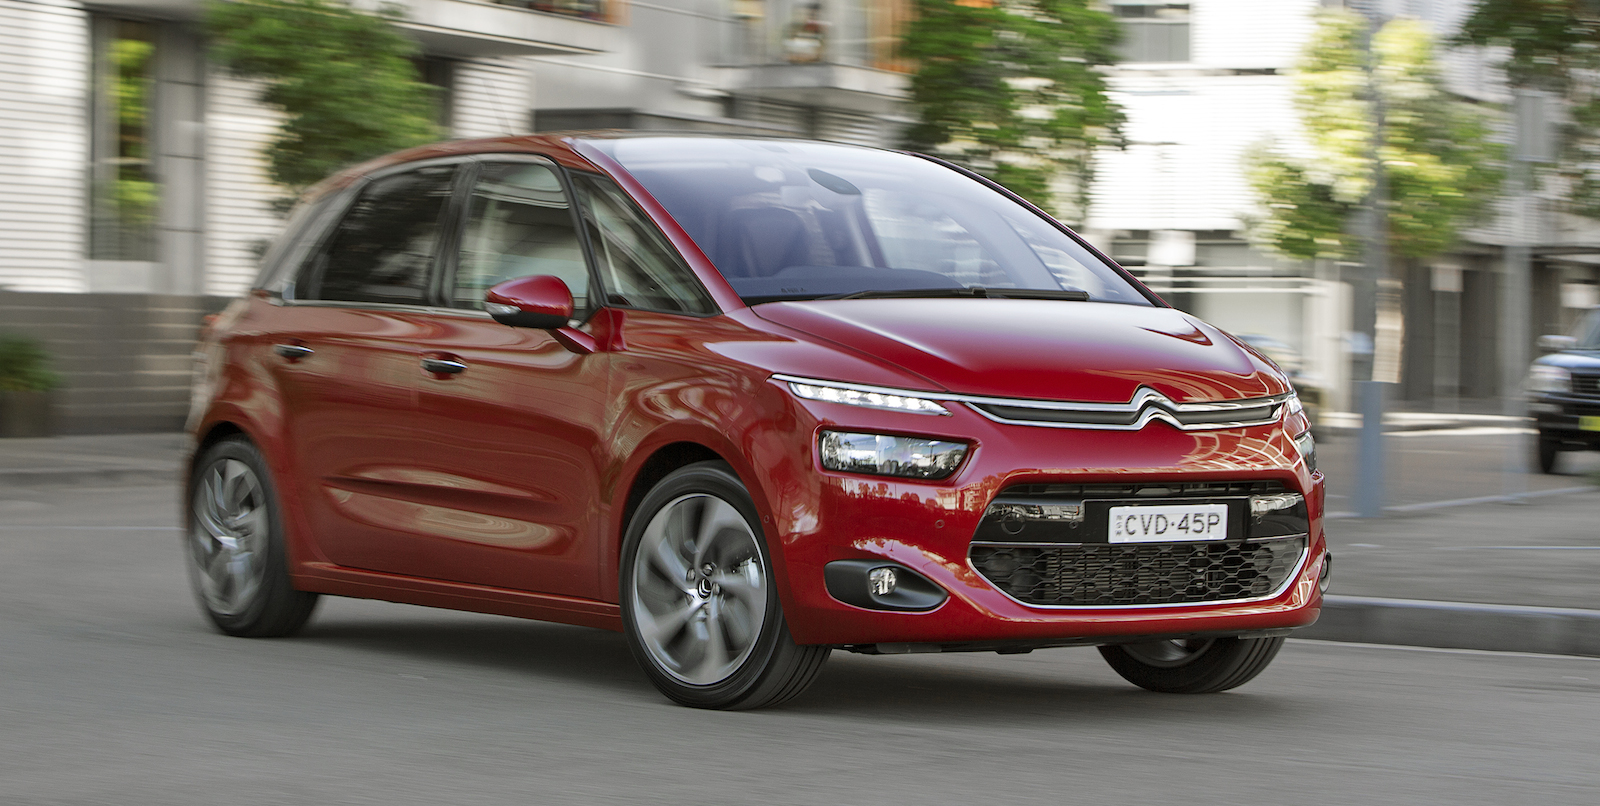 2014 15 citroen c4 picasso recalled for front suspension fix photos 1 of 2. Black Bedroom Furniture Sets. Home Design Ideas